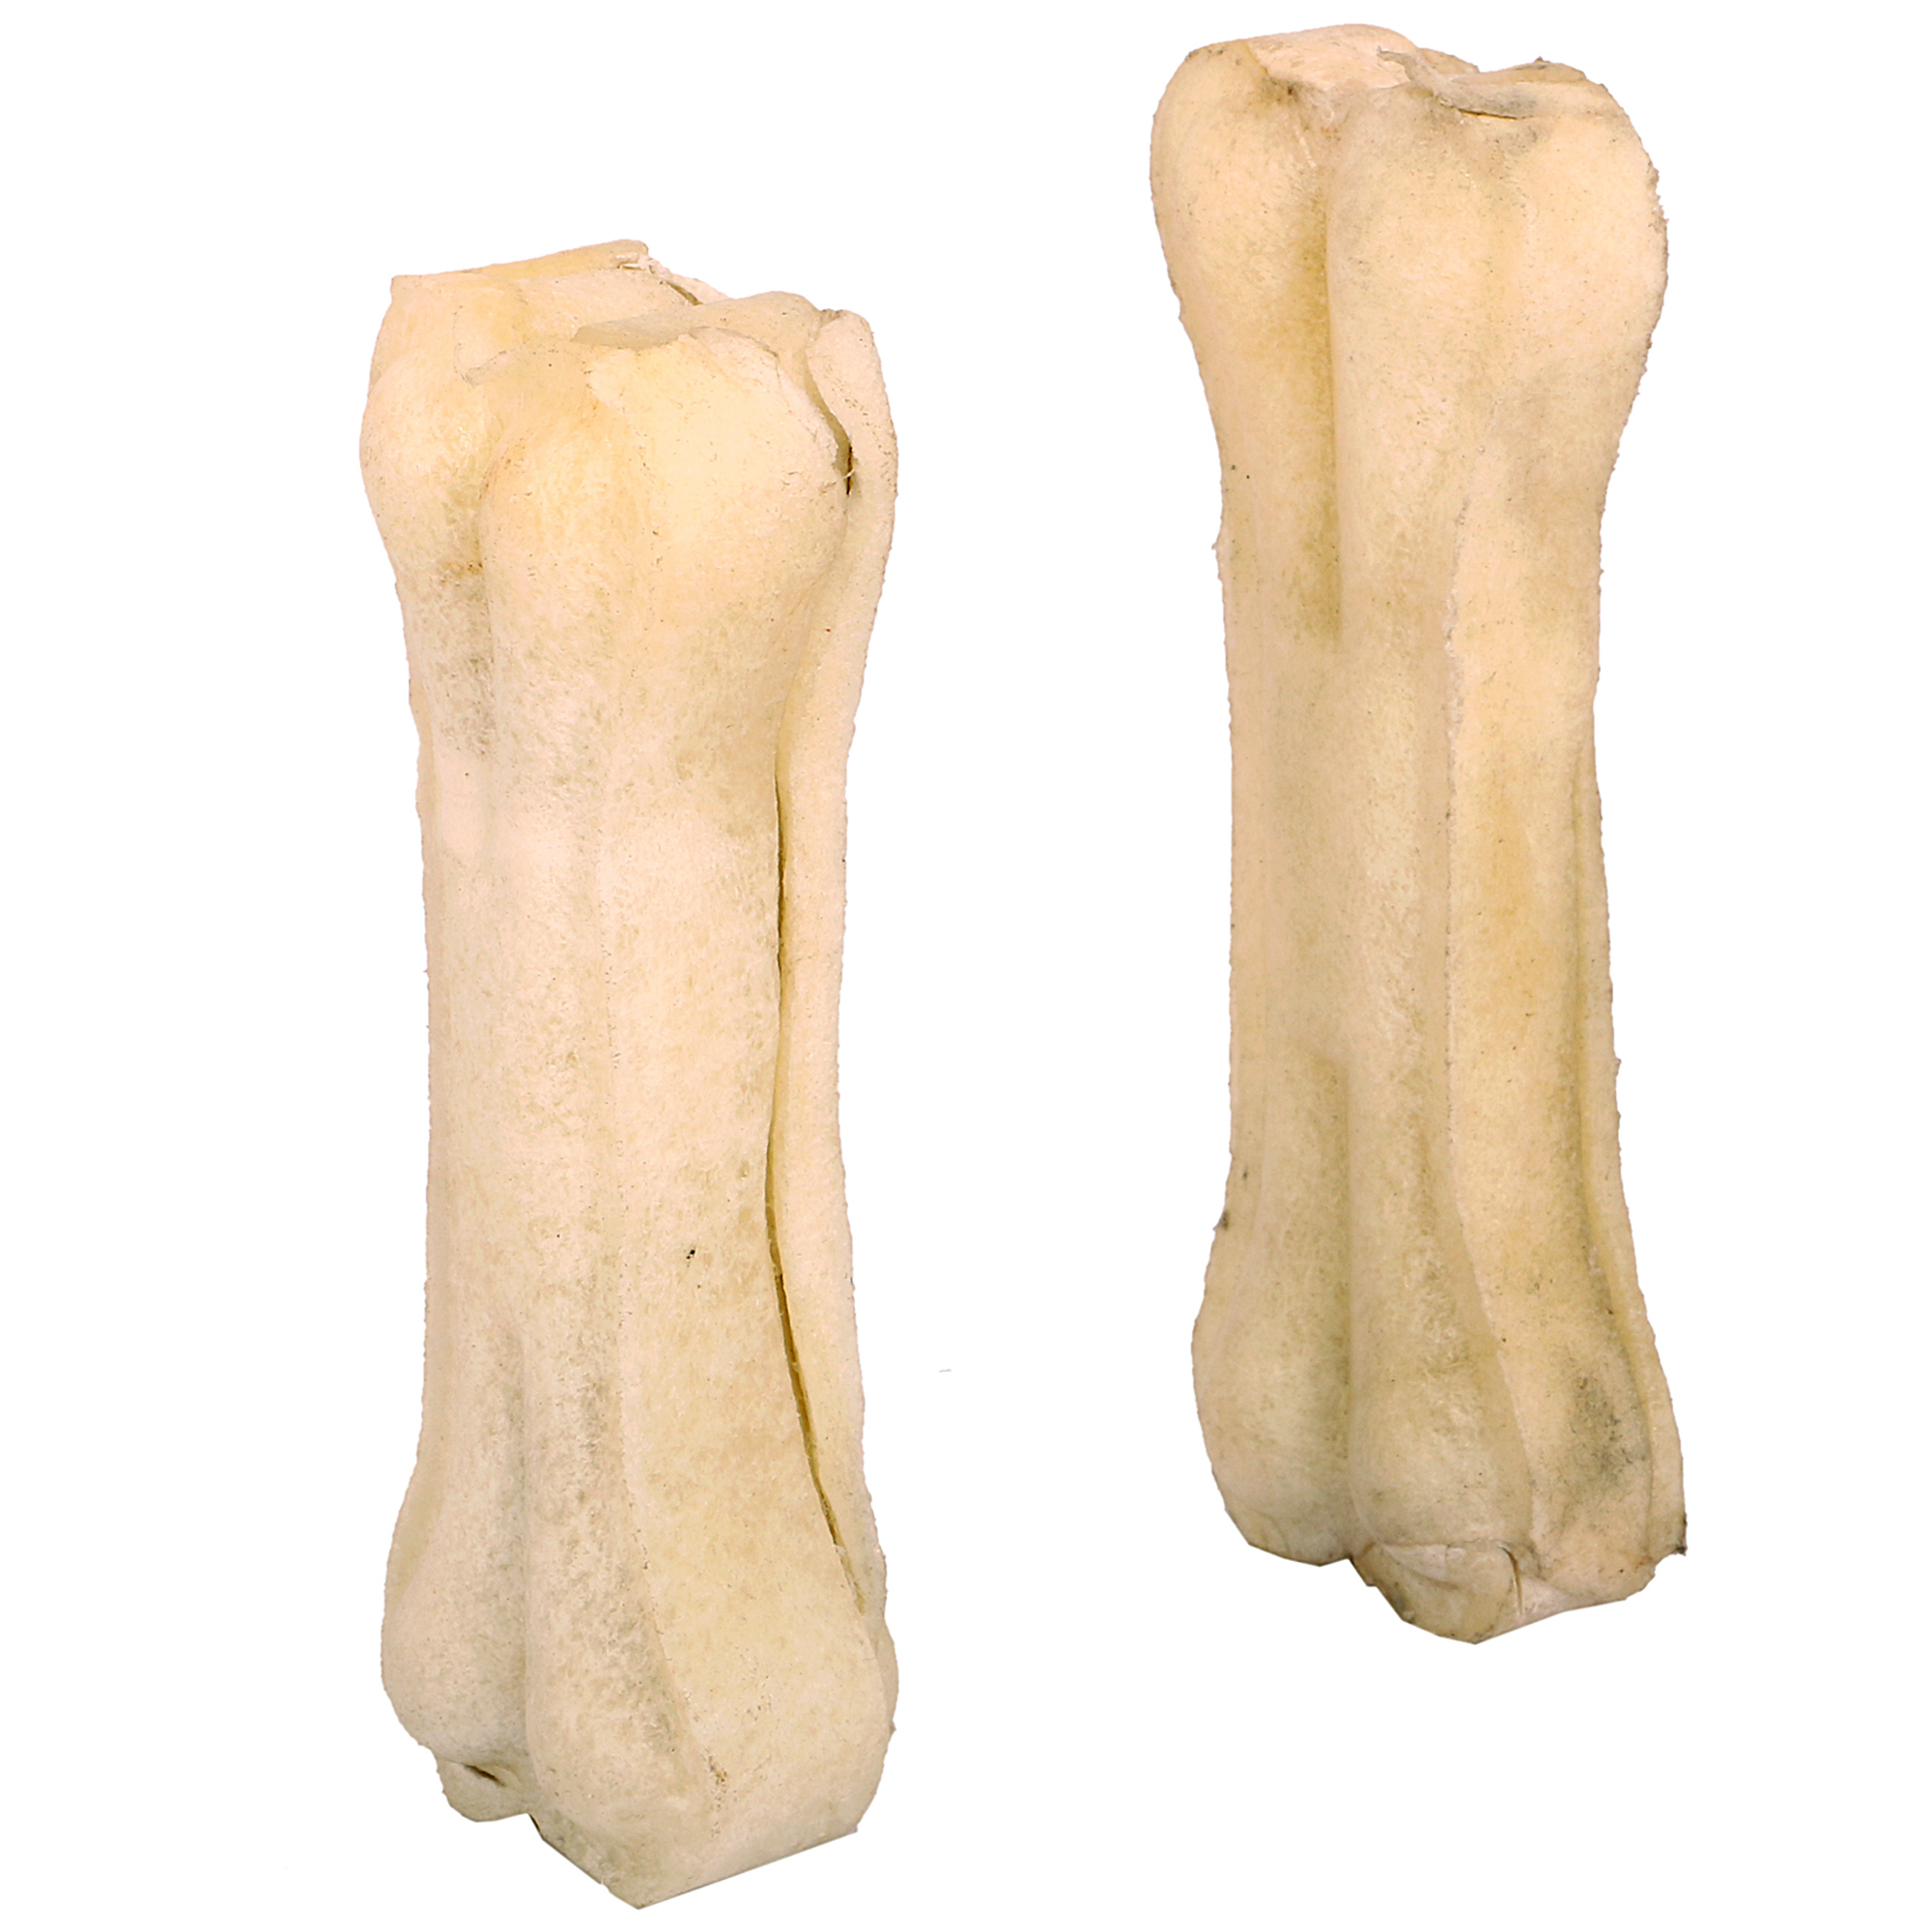 DogSpot Rawhide Bones 6 Inches - 2 pieces